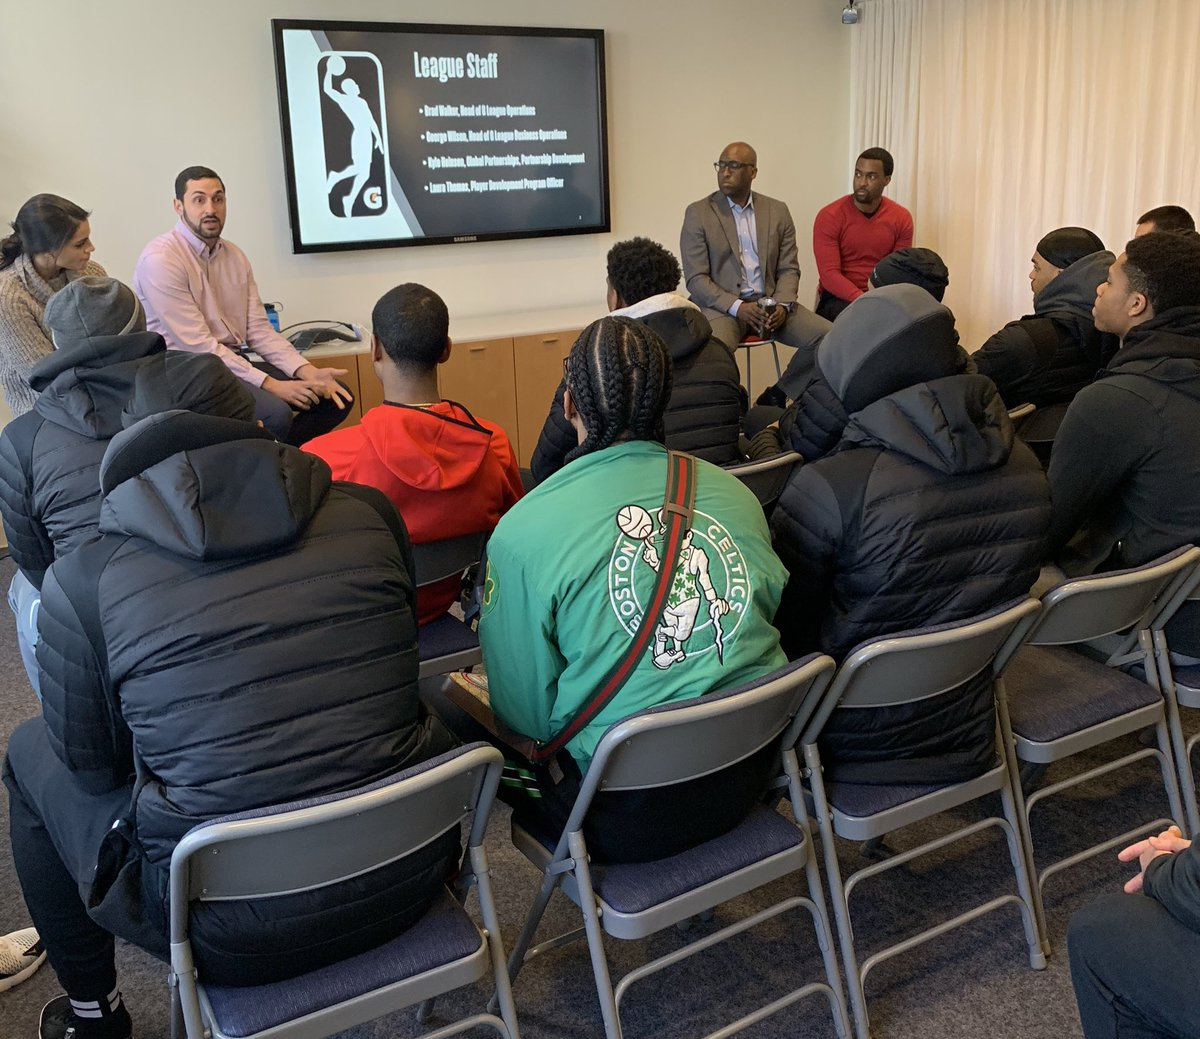 The @maineredclaws toured the @NBA office today in NYC, to learn about the ins & outs of the #NBAGLeague & #NBA!